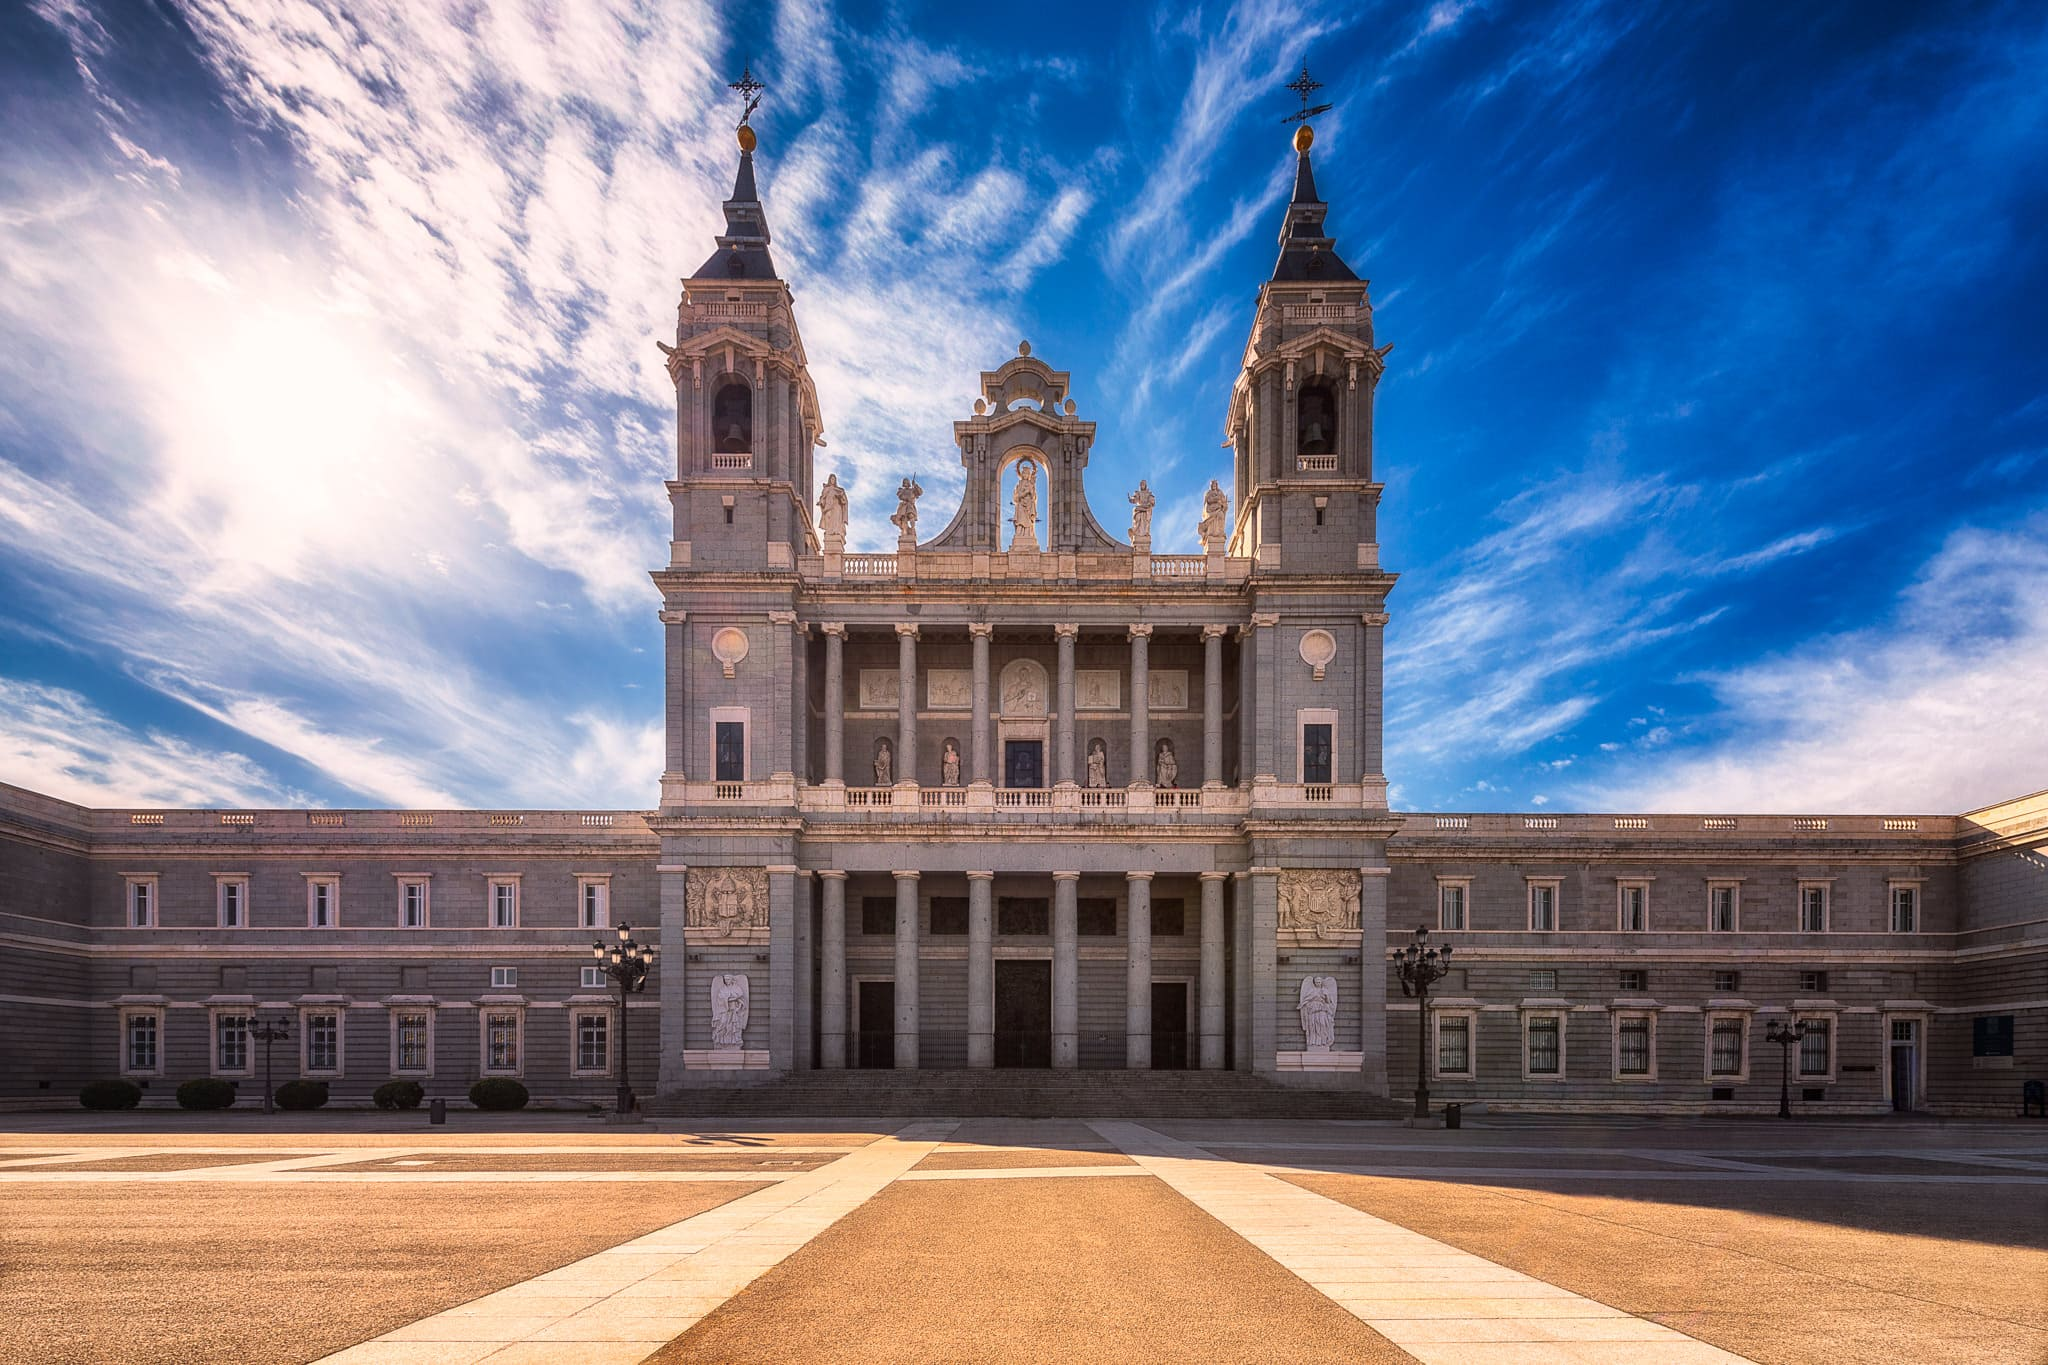 Almudena Cathedral and Plaza de la Armaria – the main tourist attractions in Madrid during a sunny day in February.